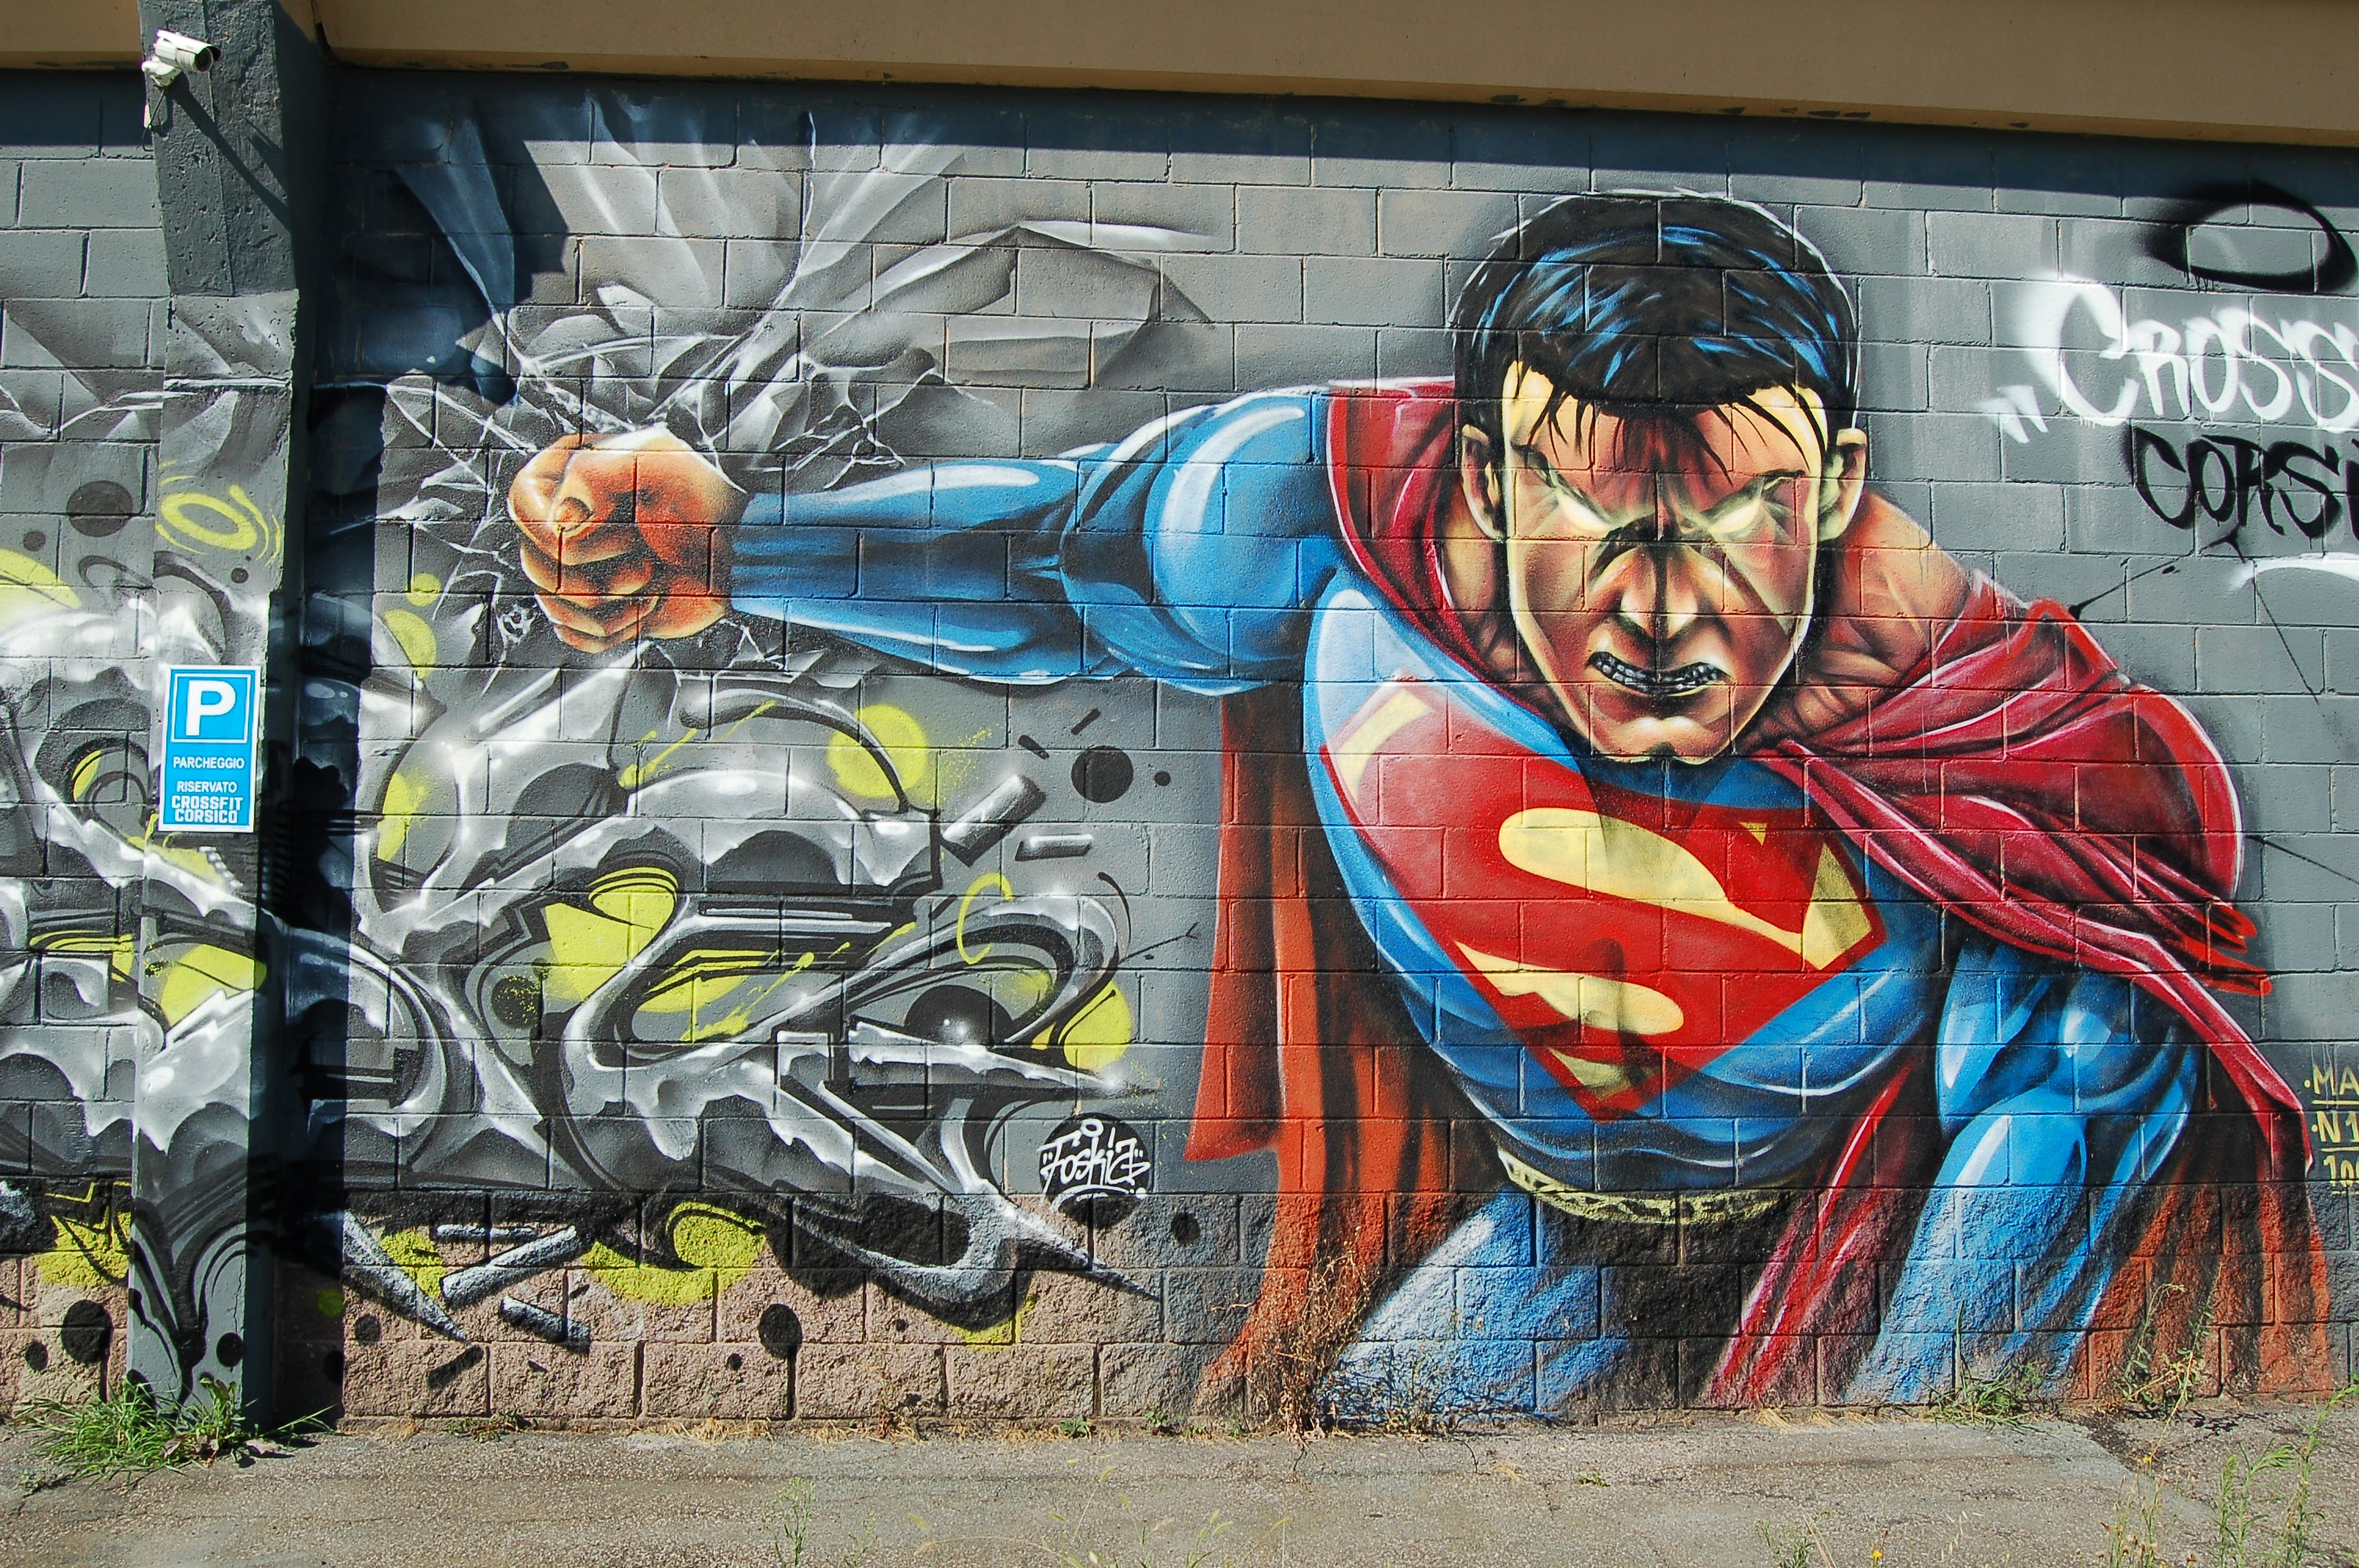 An intense graffiti painting of Superman on a building wall.